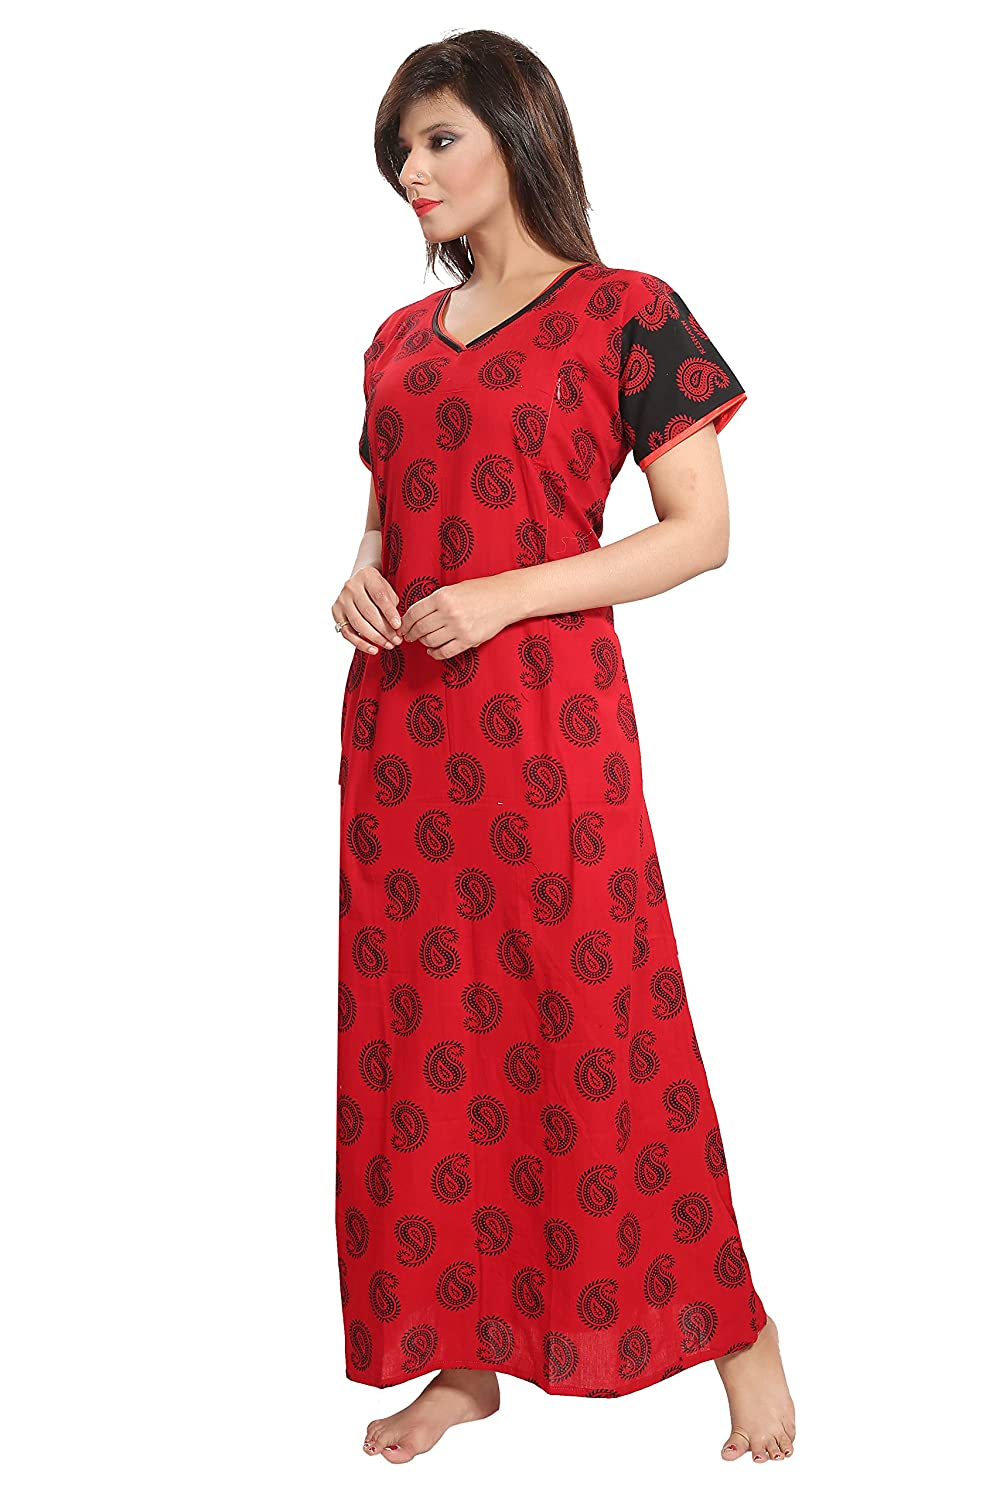 0428ddc578 TUCUTE Women s Beautiful Botty Print Cotton Feeding Maternity Nursing  Nighty Nightwear with Pocket   Invisible Zip (Red 1642)  Amazon.in   Clothing   ...